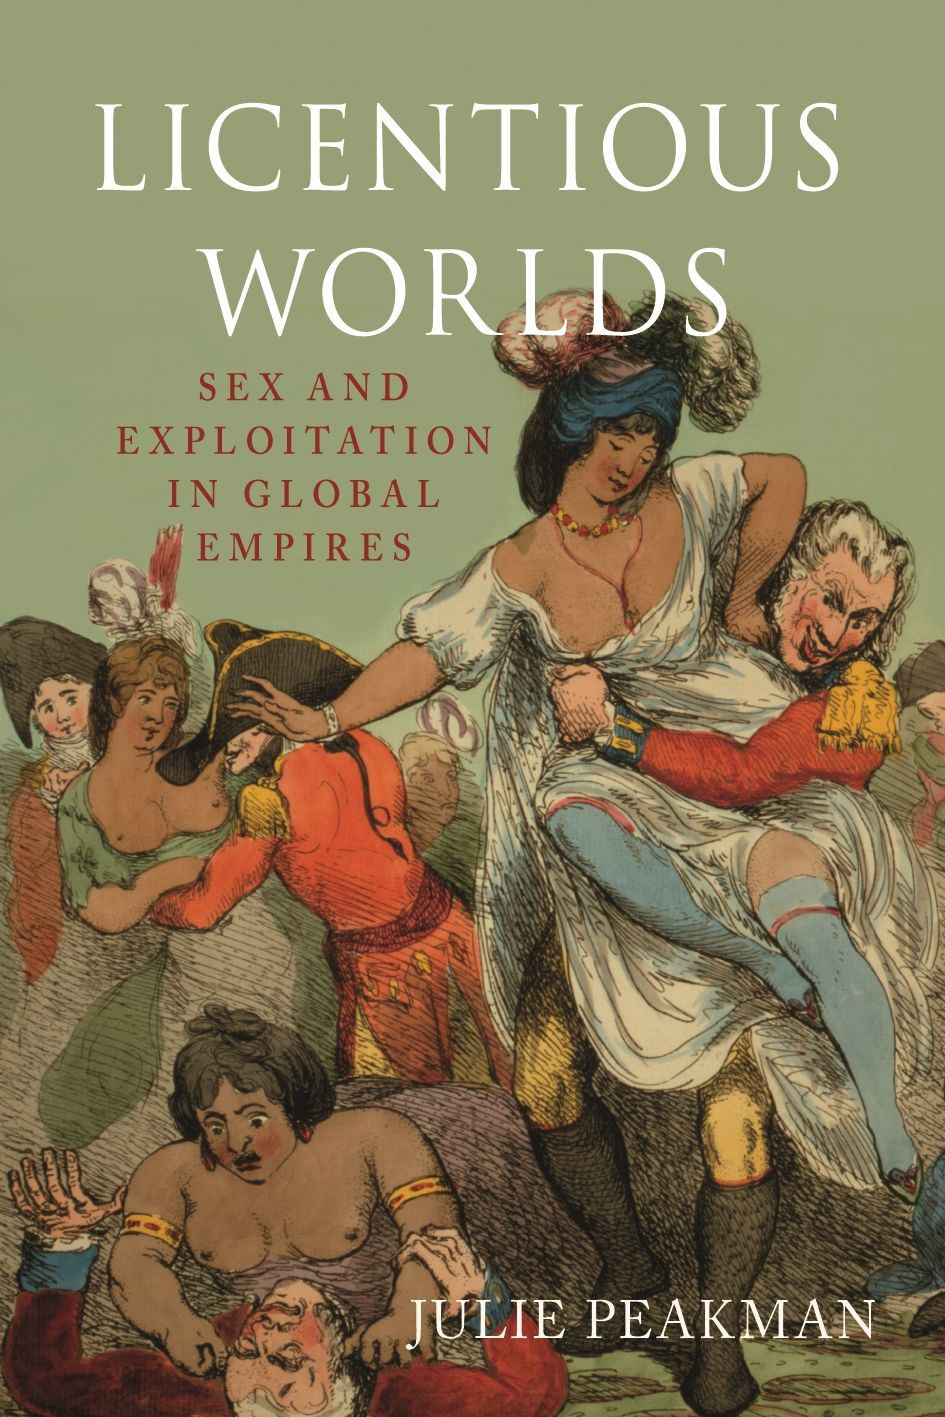 Licentious Worlds: Sex and Exploitation in Global Empires